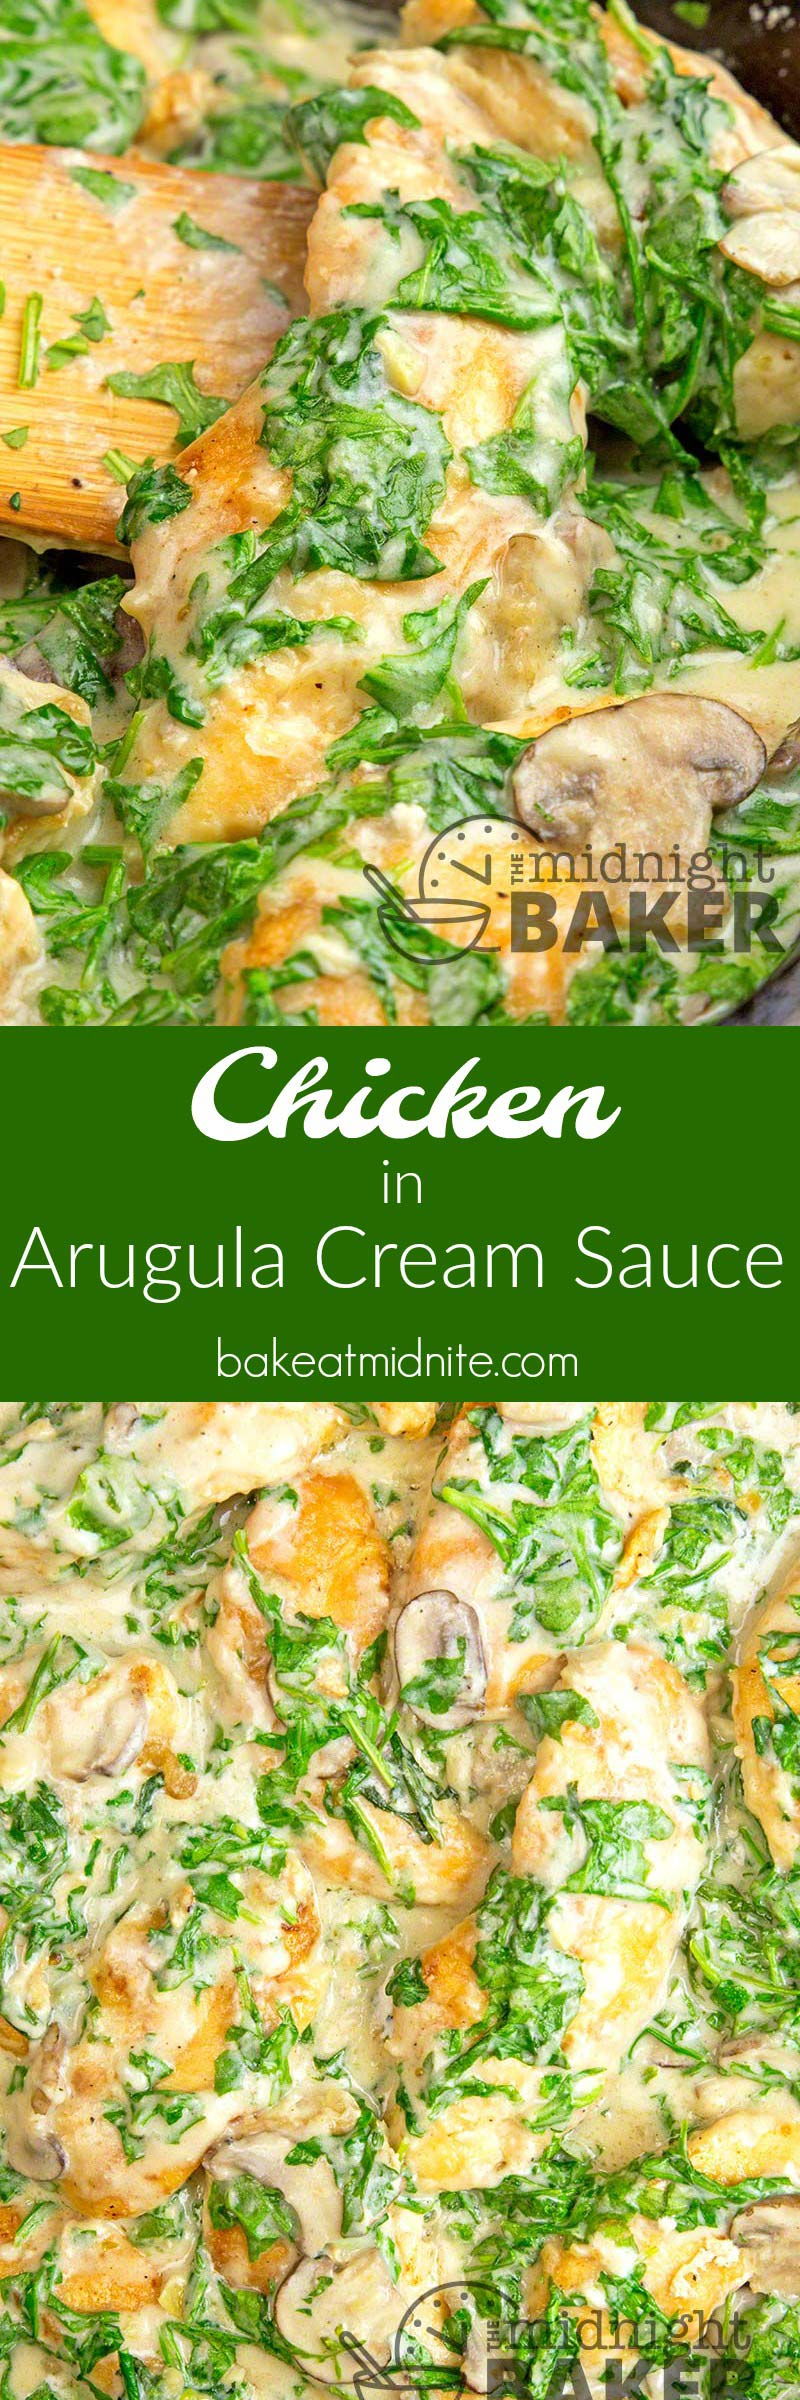 If you love arugula (rocket), then you'll love this quick and easy chicken skillet dinner!